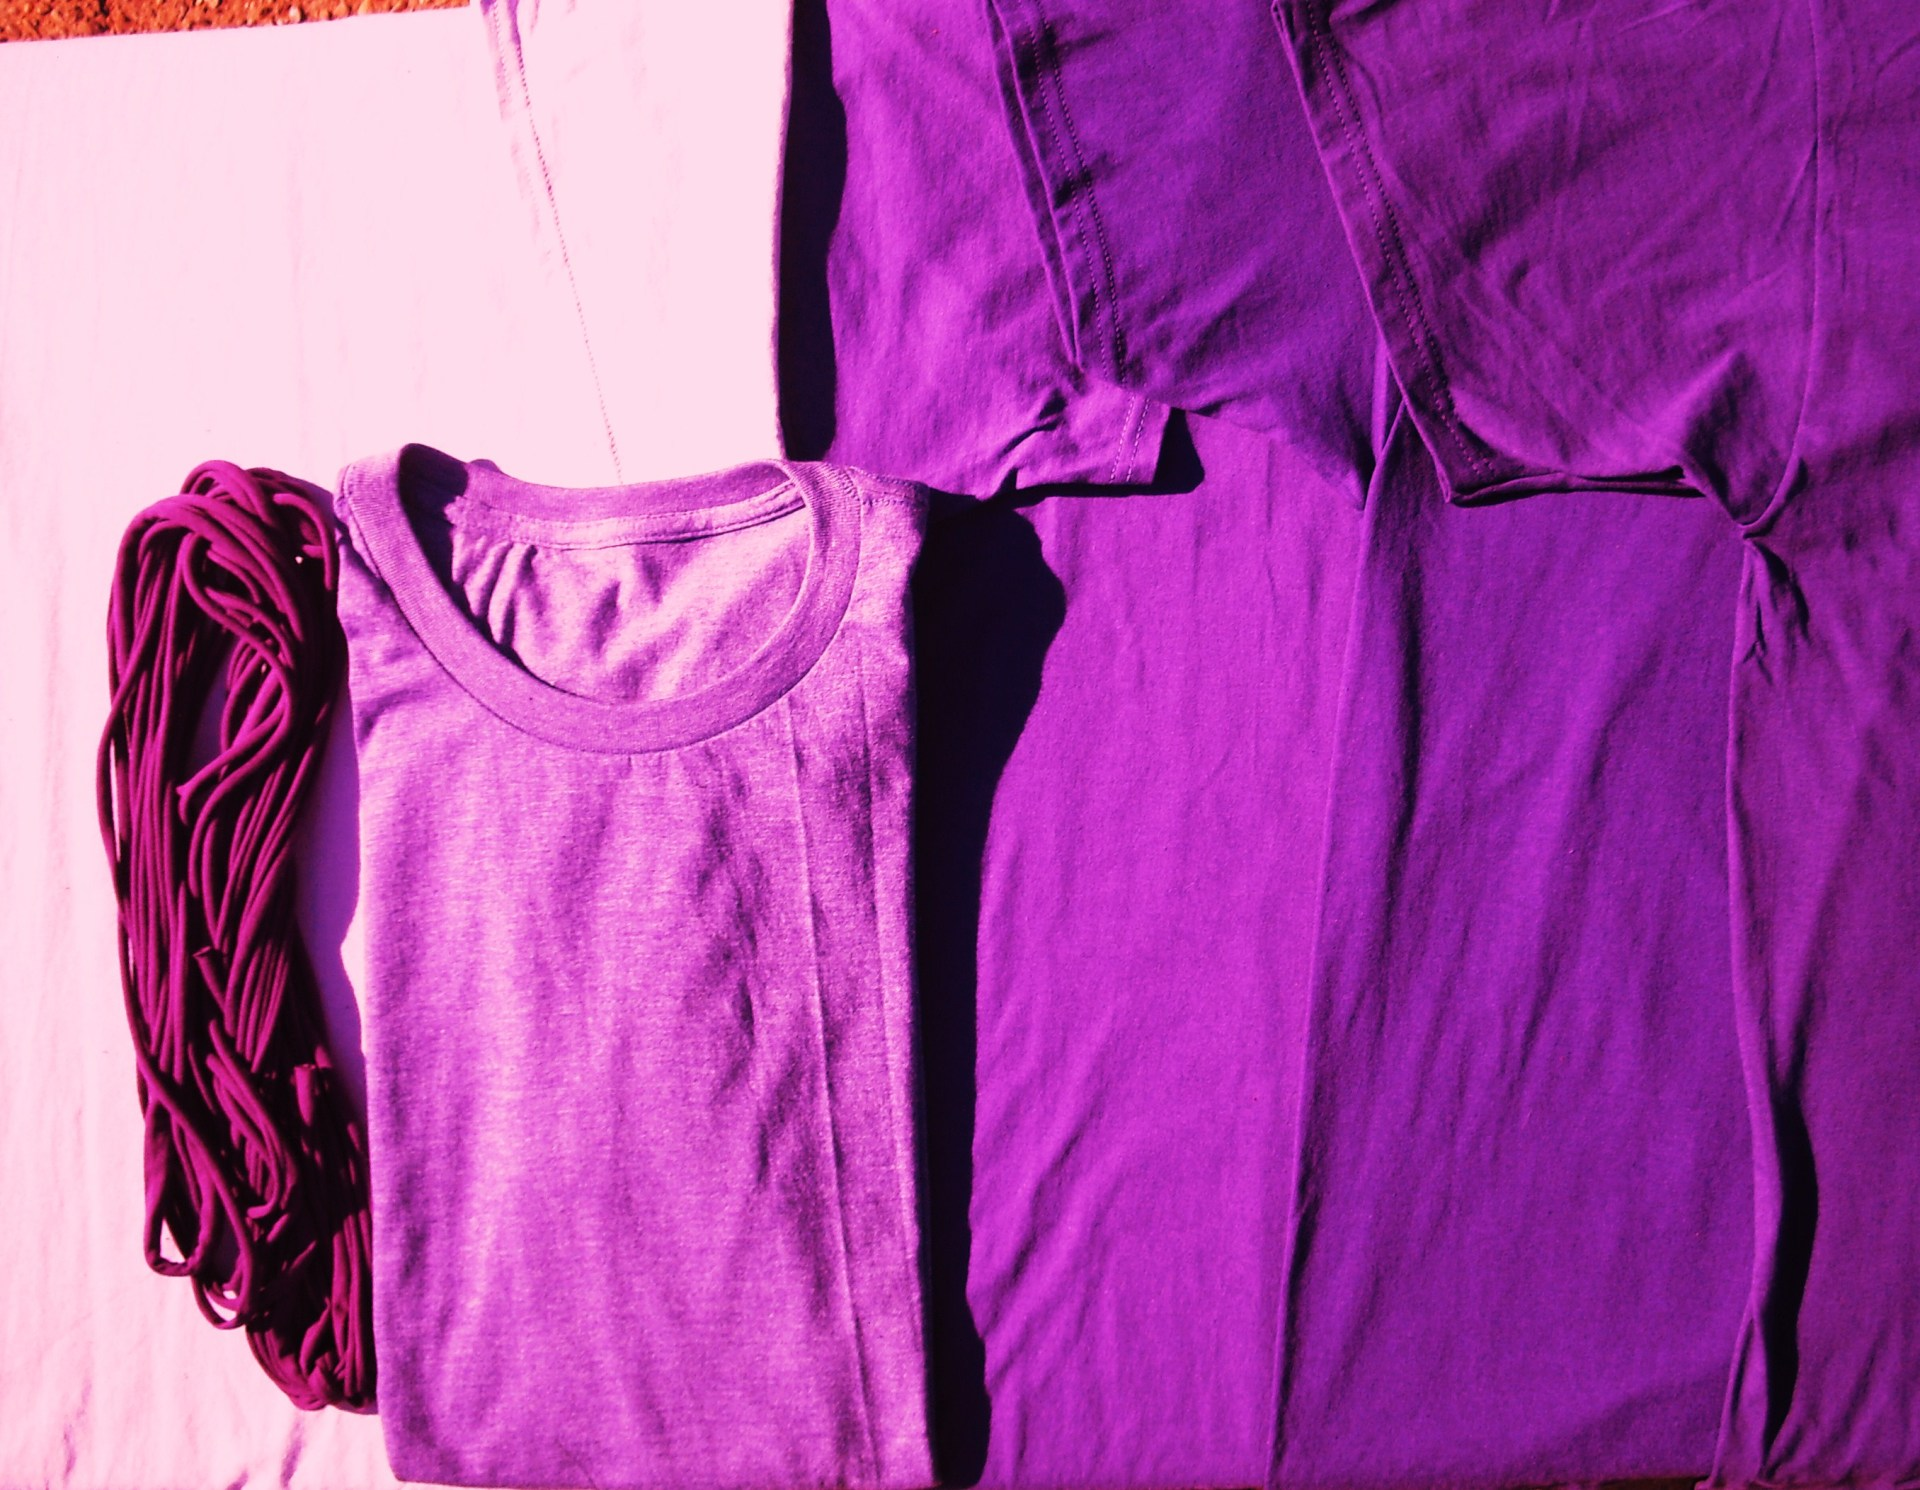 Winterberry T-Cords, Orchid, Purple Heather, Purple, Rich and Dark Purples